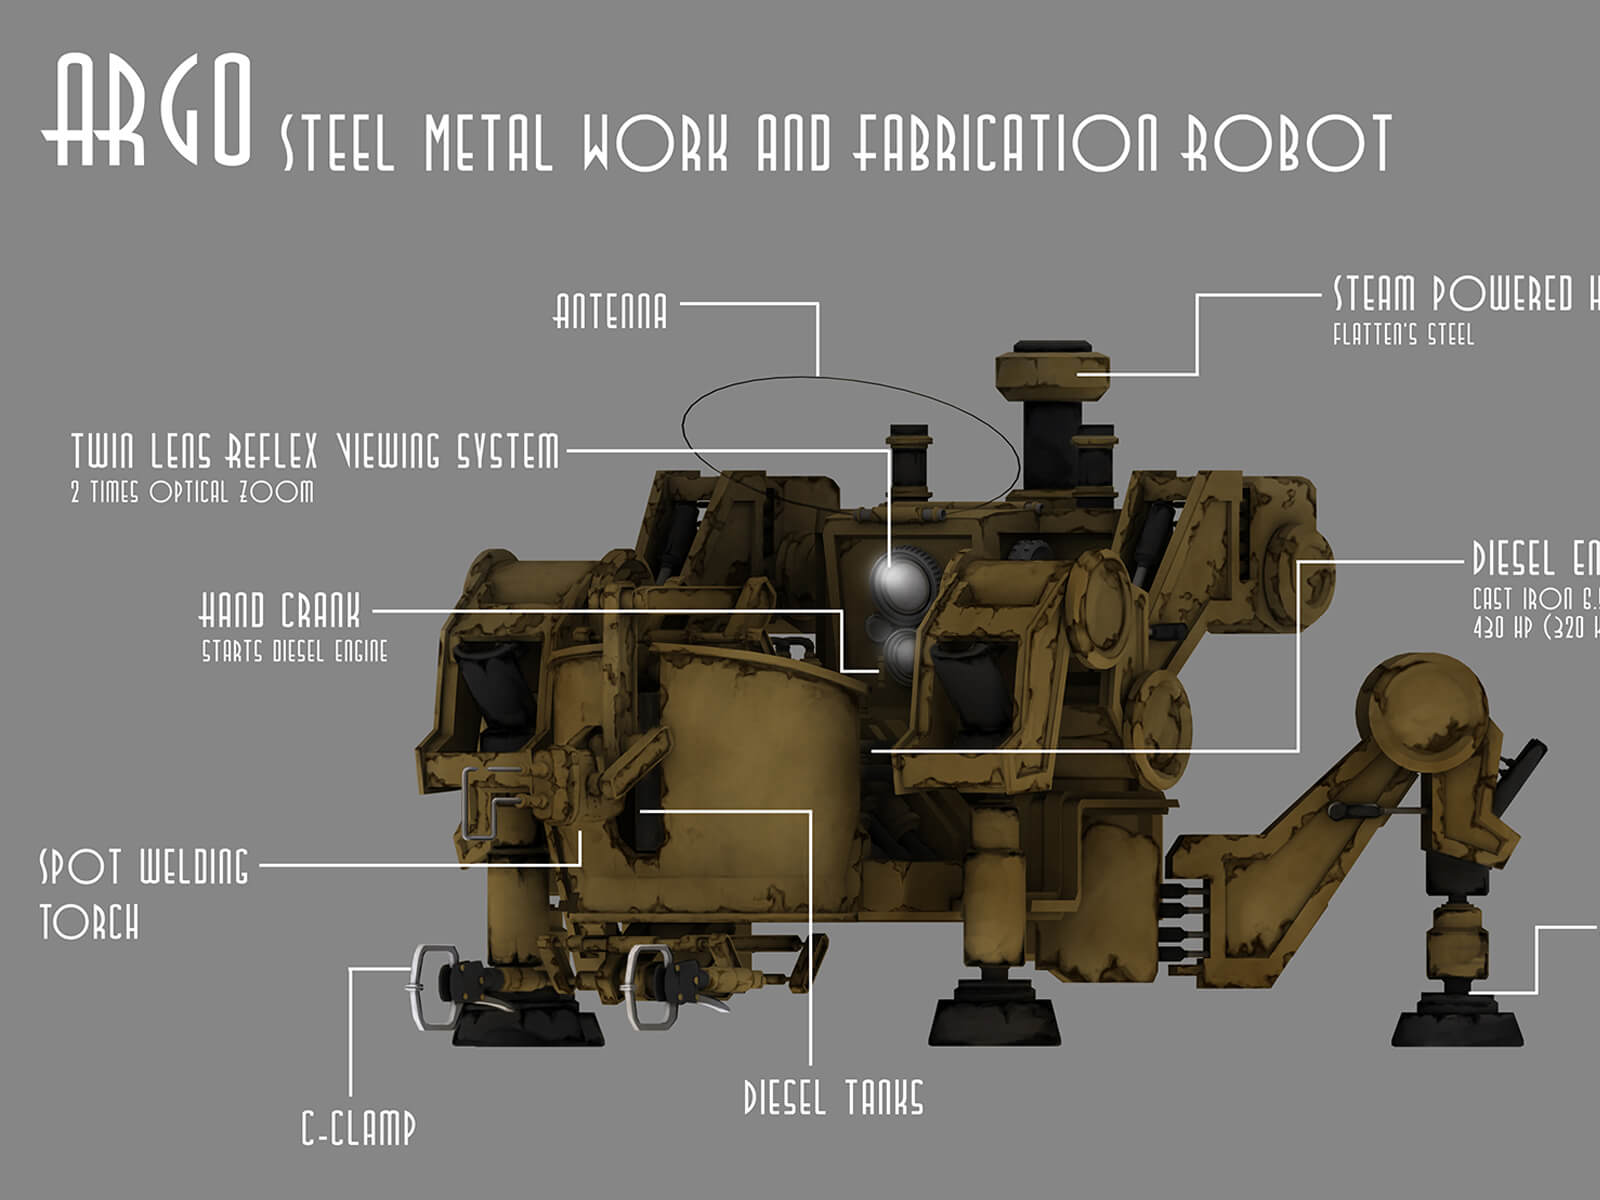 Concept art identifying components of a squat, beige mechanical vehicle with four legs and steam-powered hammer.